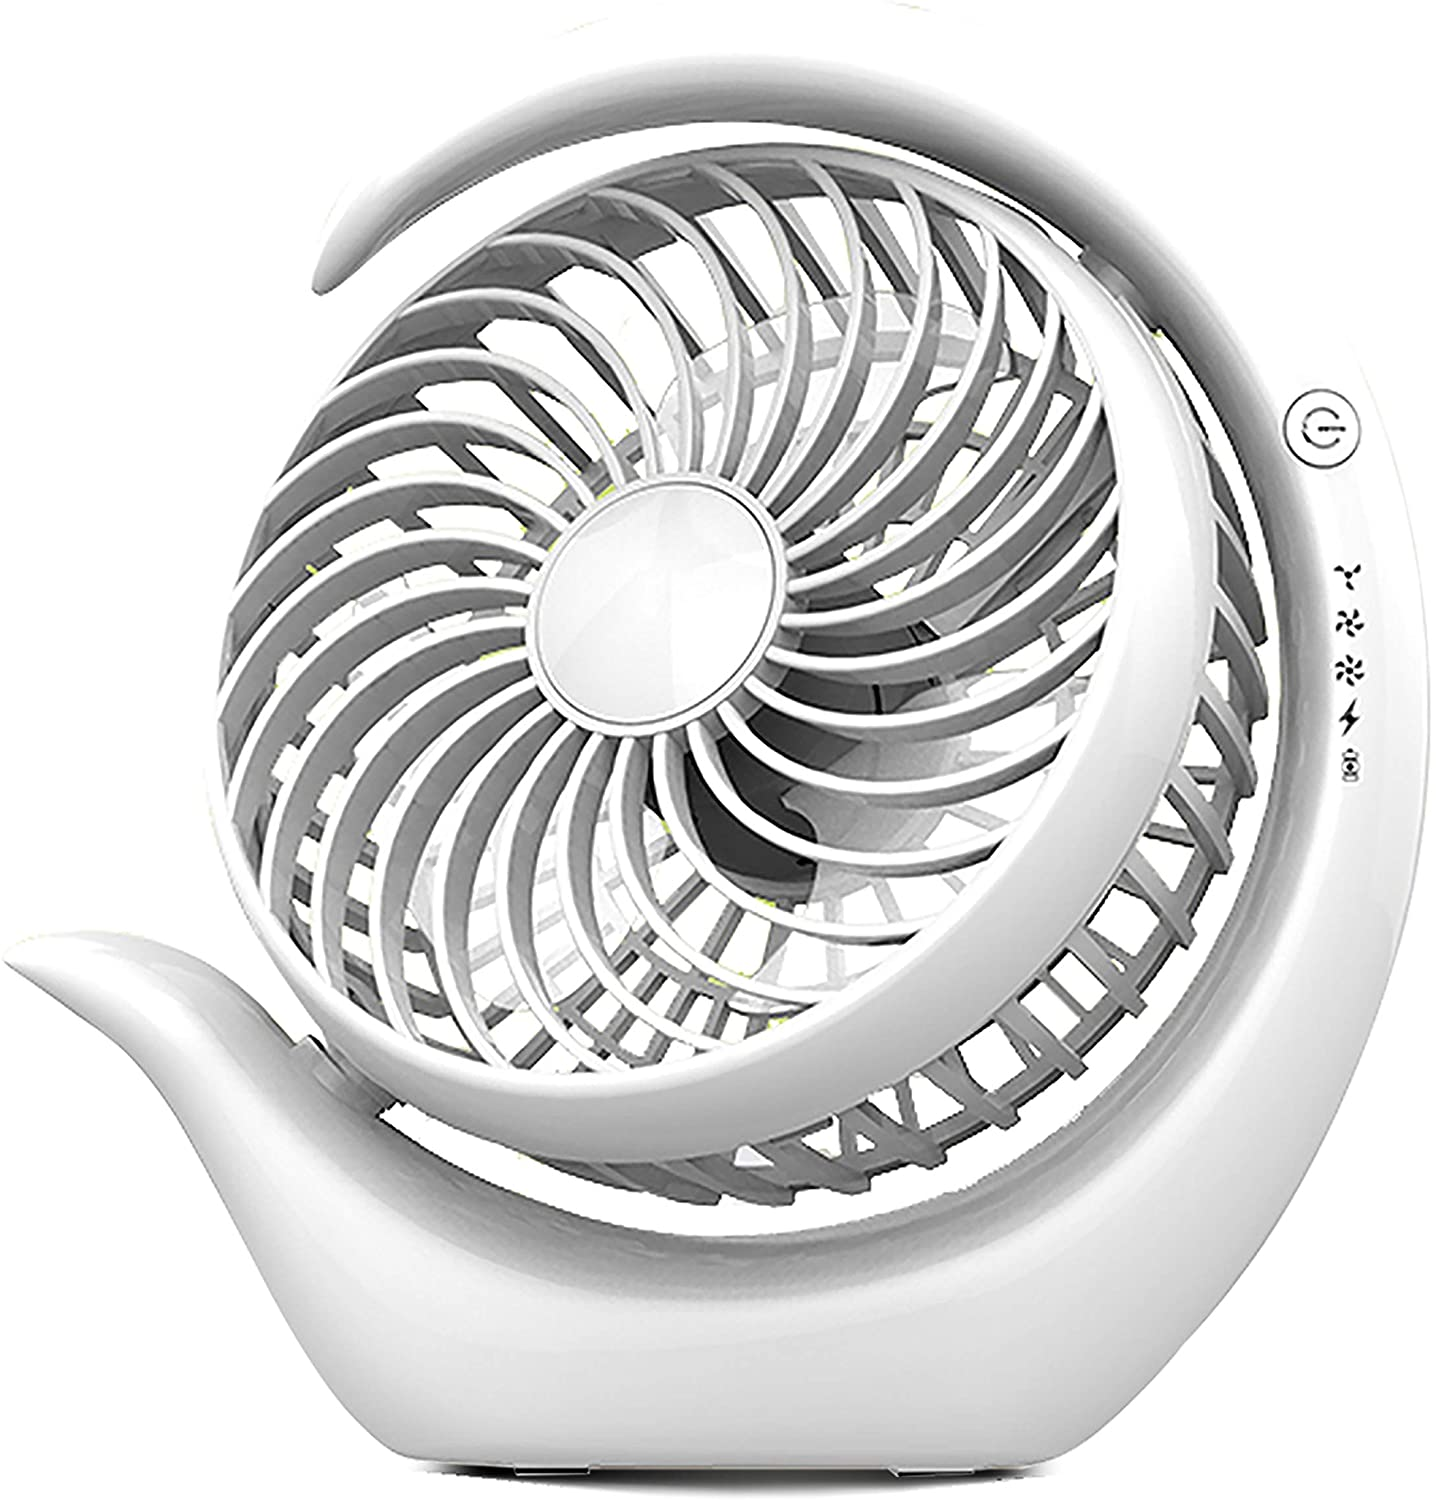 Portable Rotatable Led Light Fan USB Powered Air Cooling Fan Clip On Desk Fans with Three Speeds Wind Via-Tek